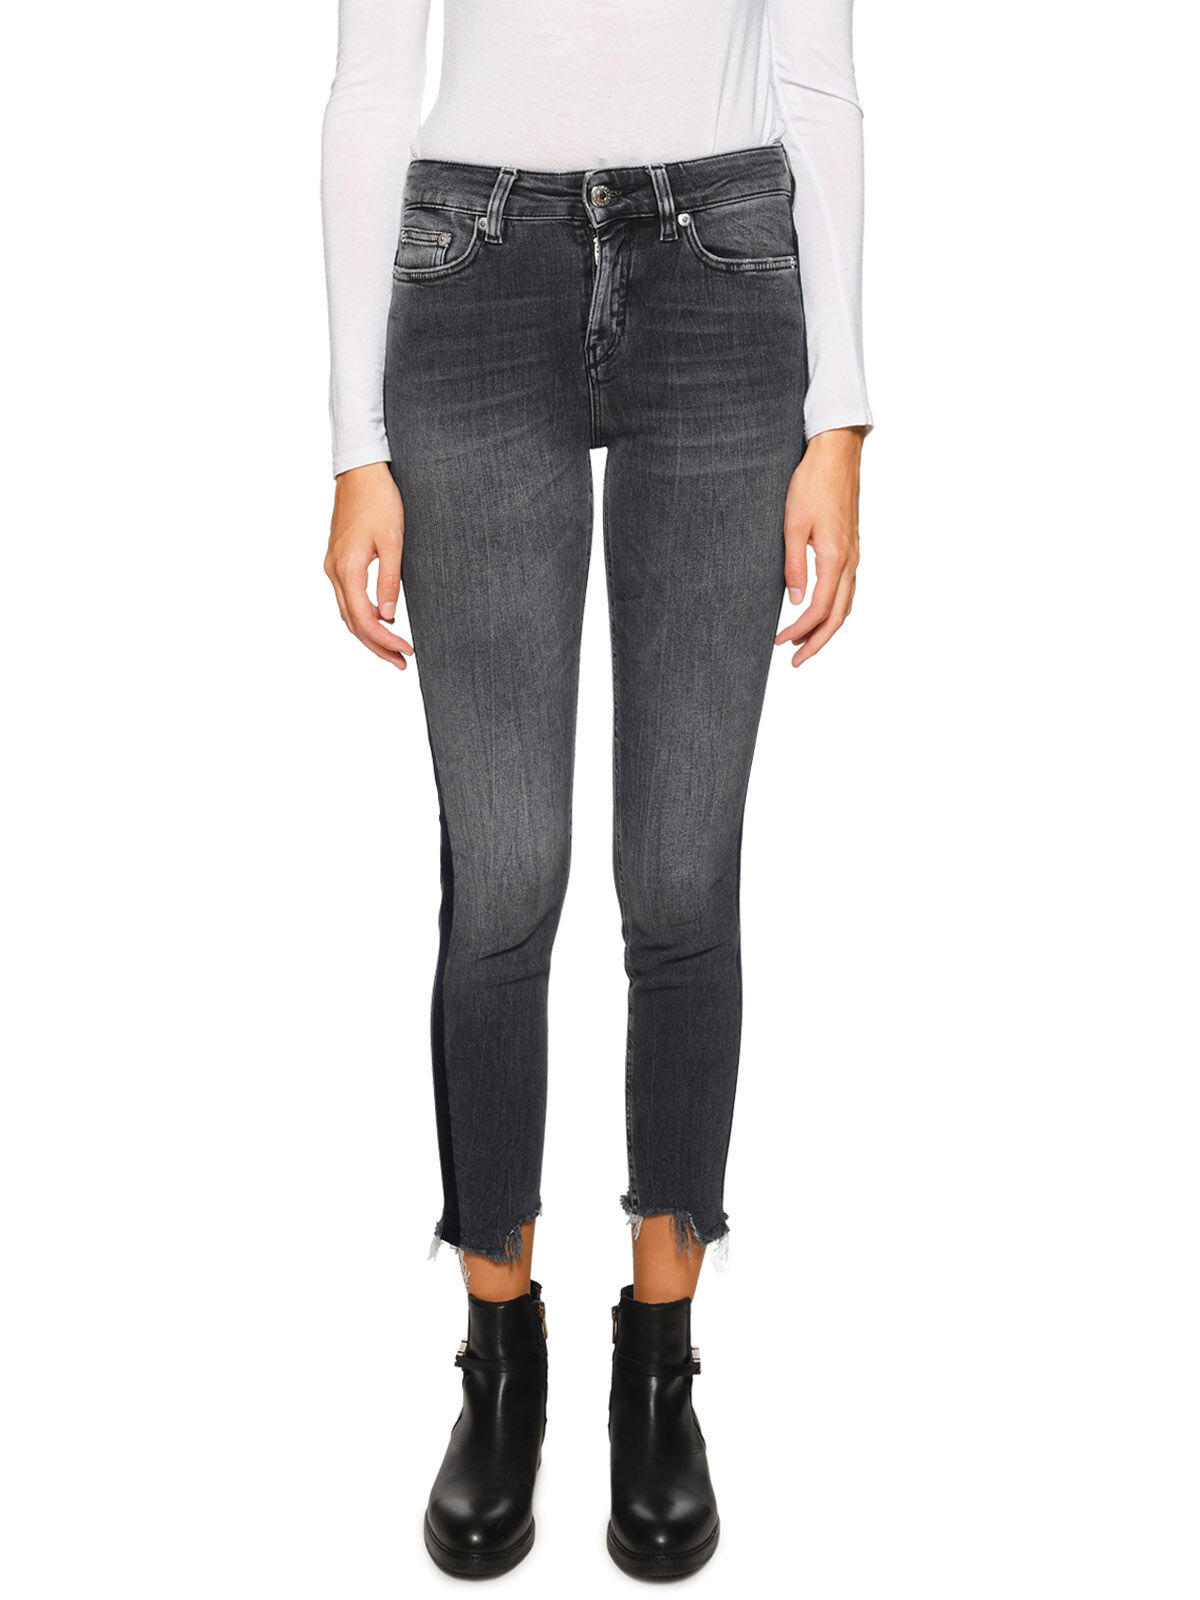 Need Jeans